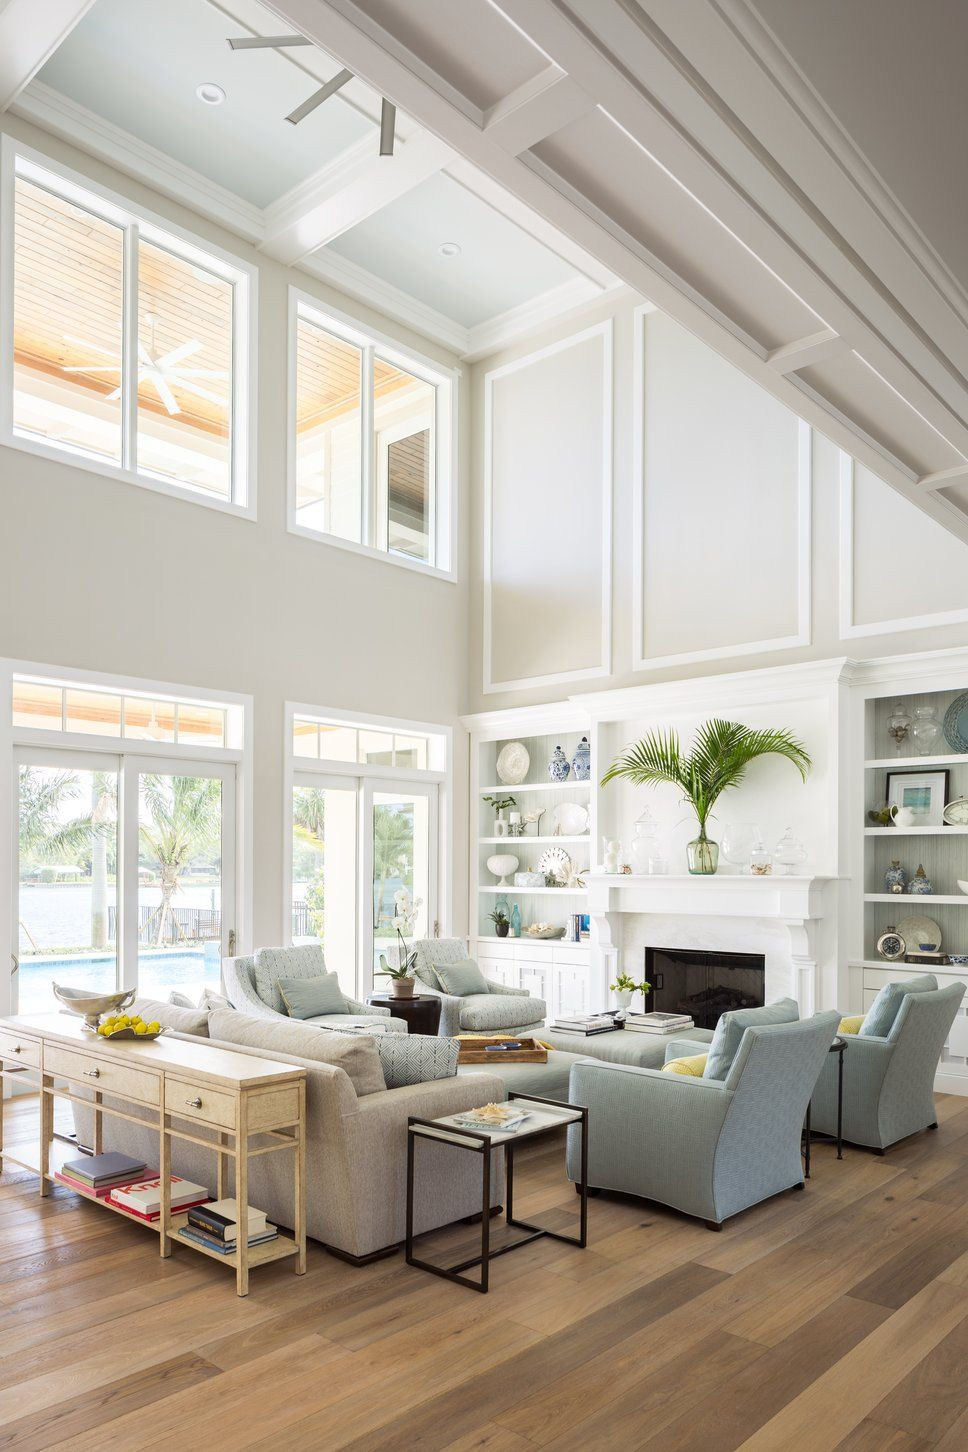 Cottage/Country Living Room Design Photo by Krista Watterworth ...